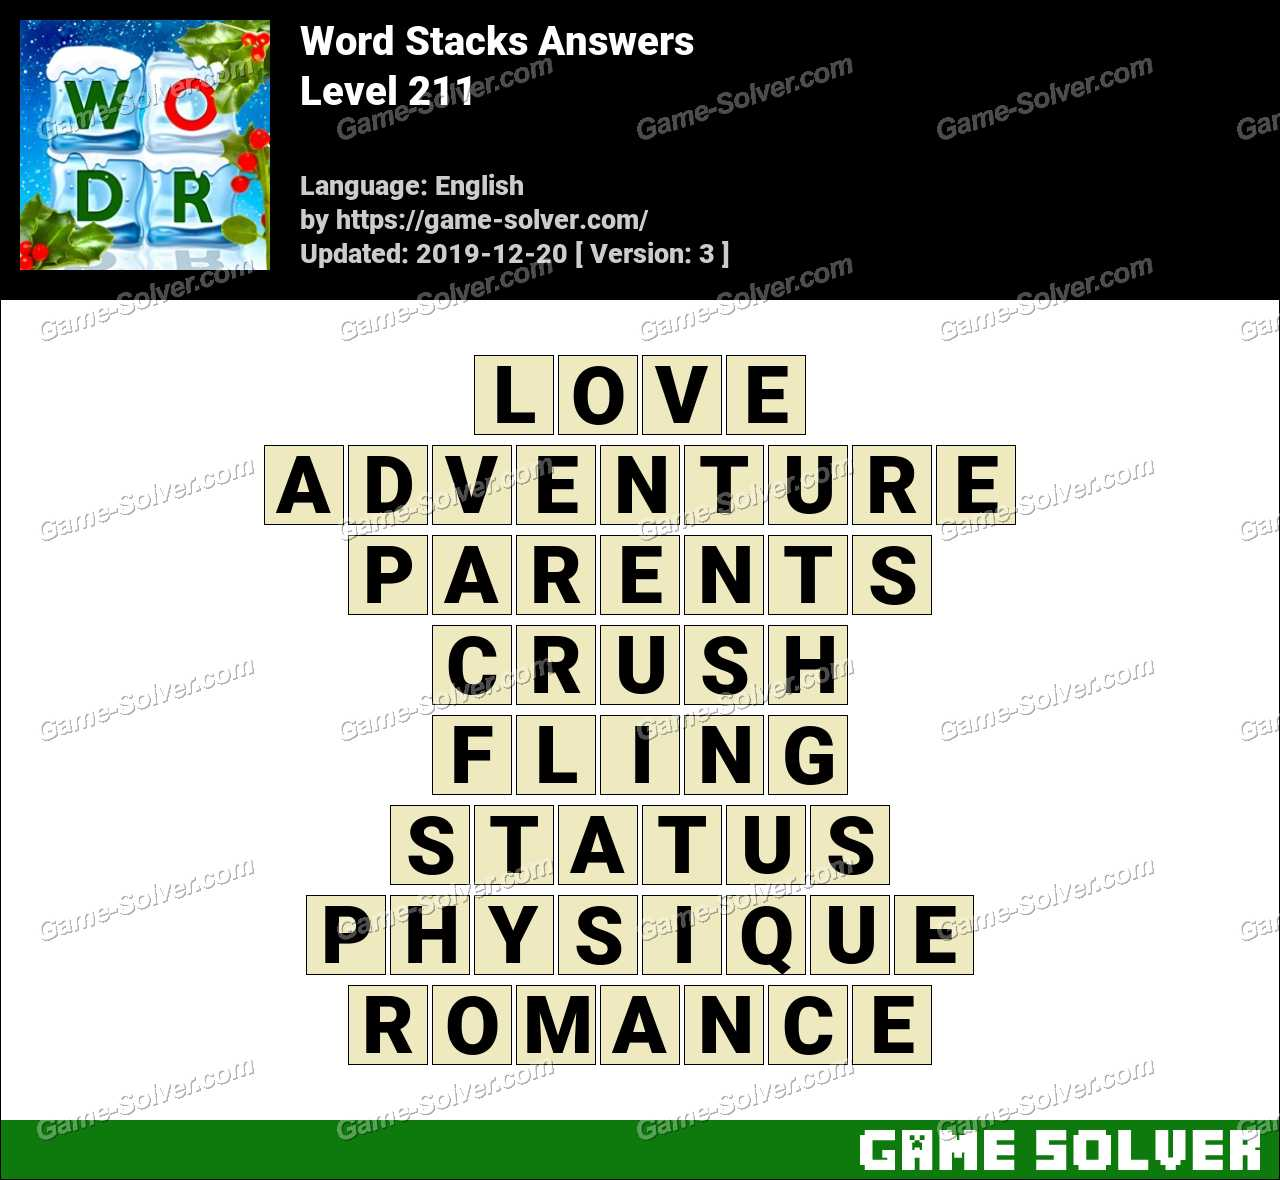 Word Stacks Level 211 Answers